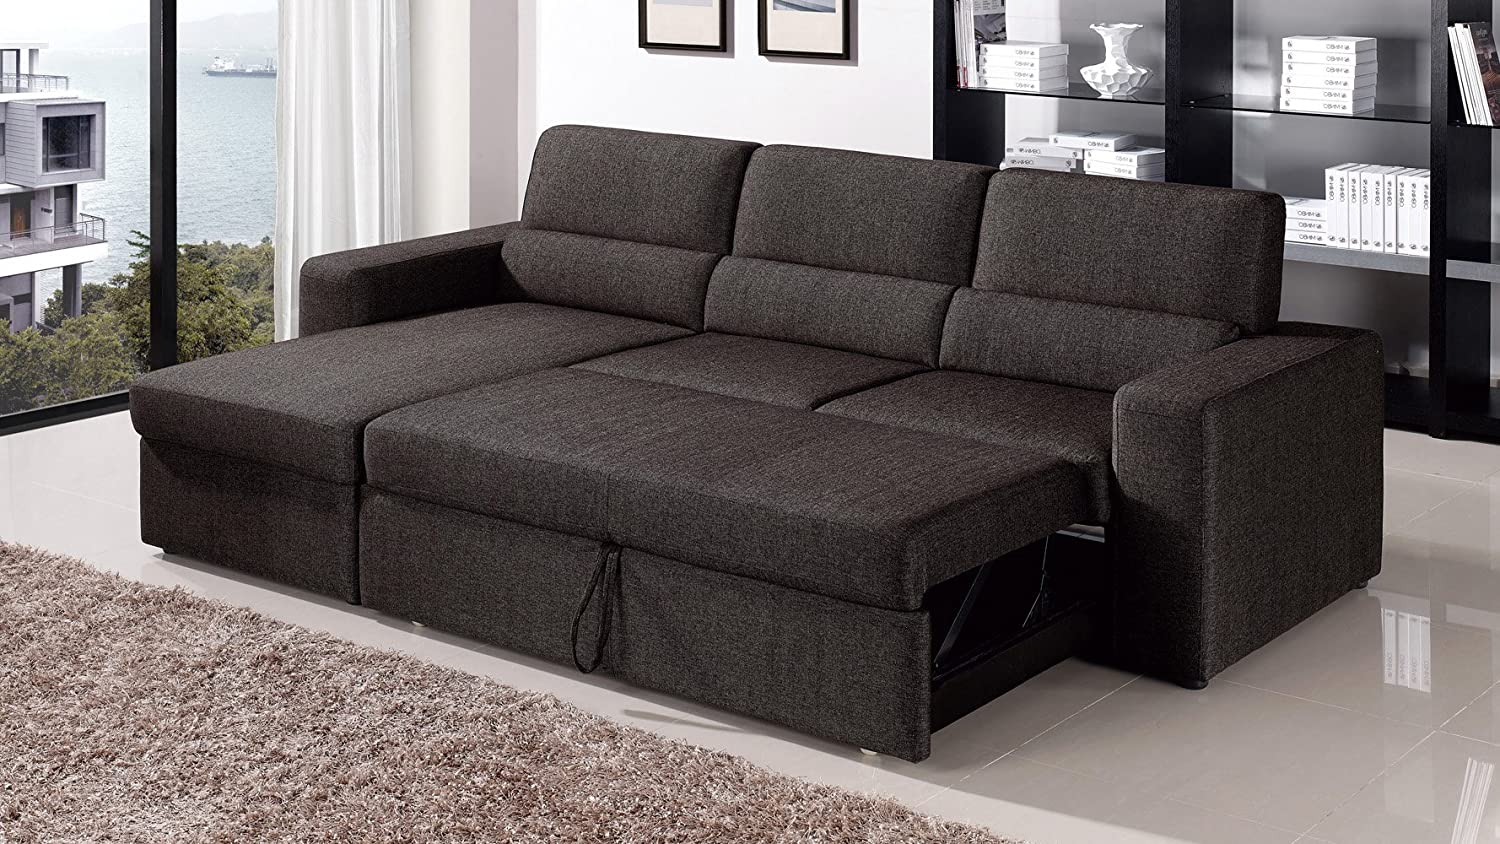 Amazon Com Black Brown Clubber Sleeper Sectional Sofa Left Chaise Kitchen Dining